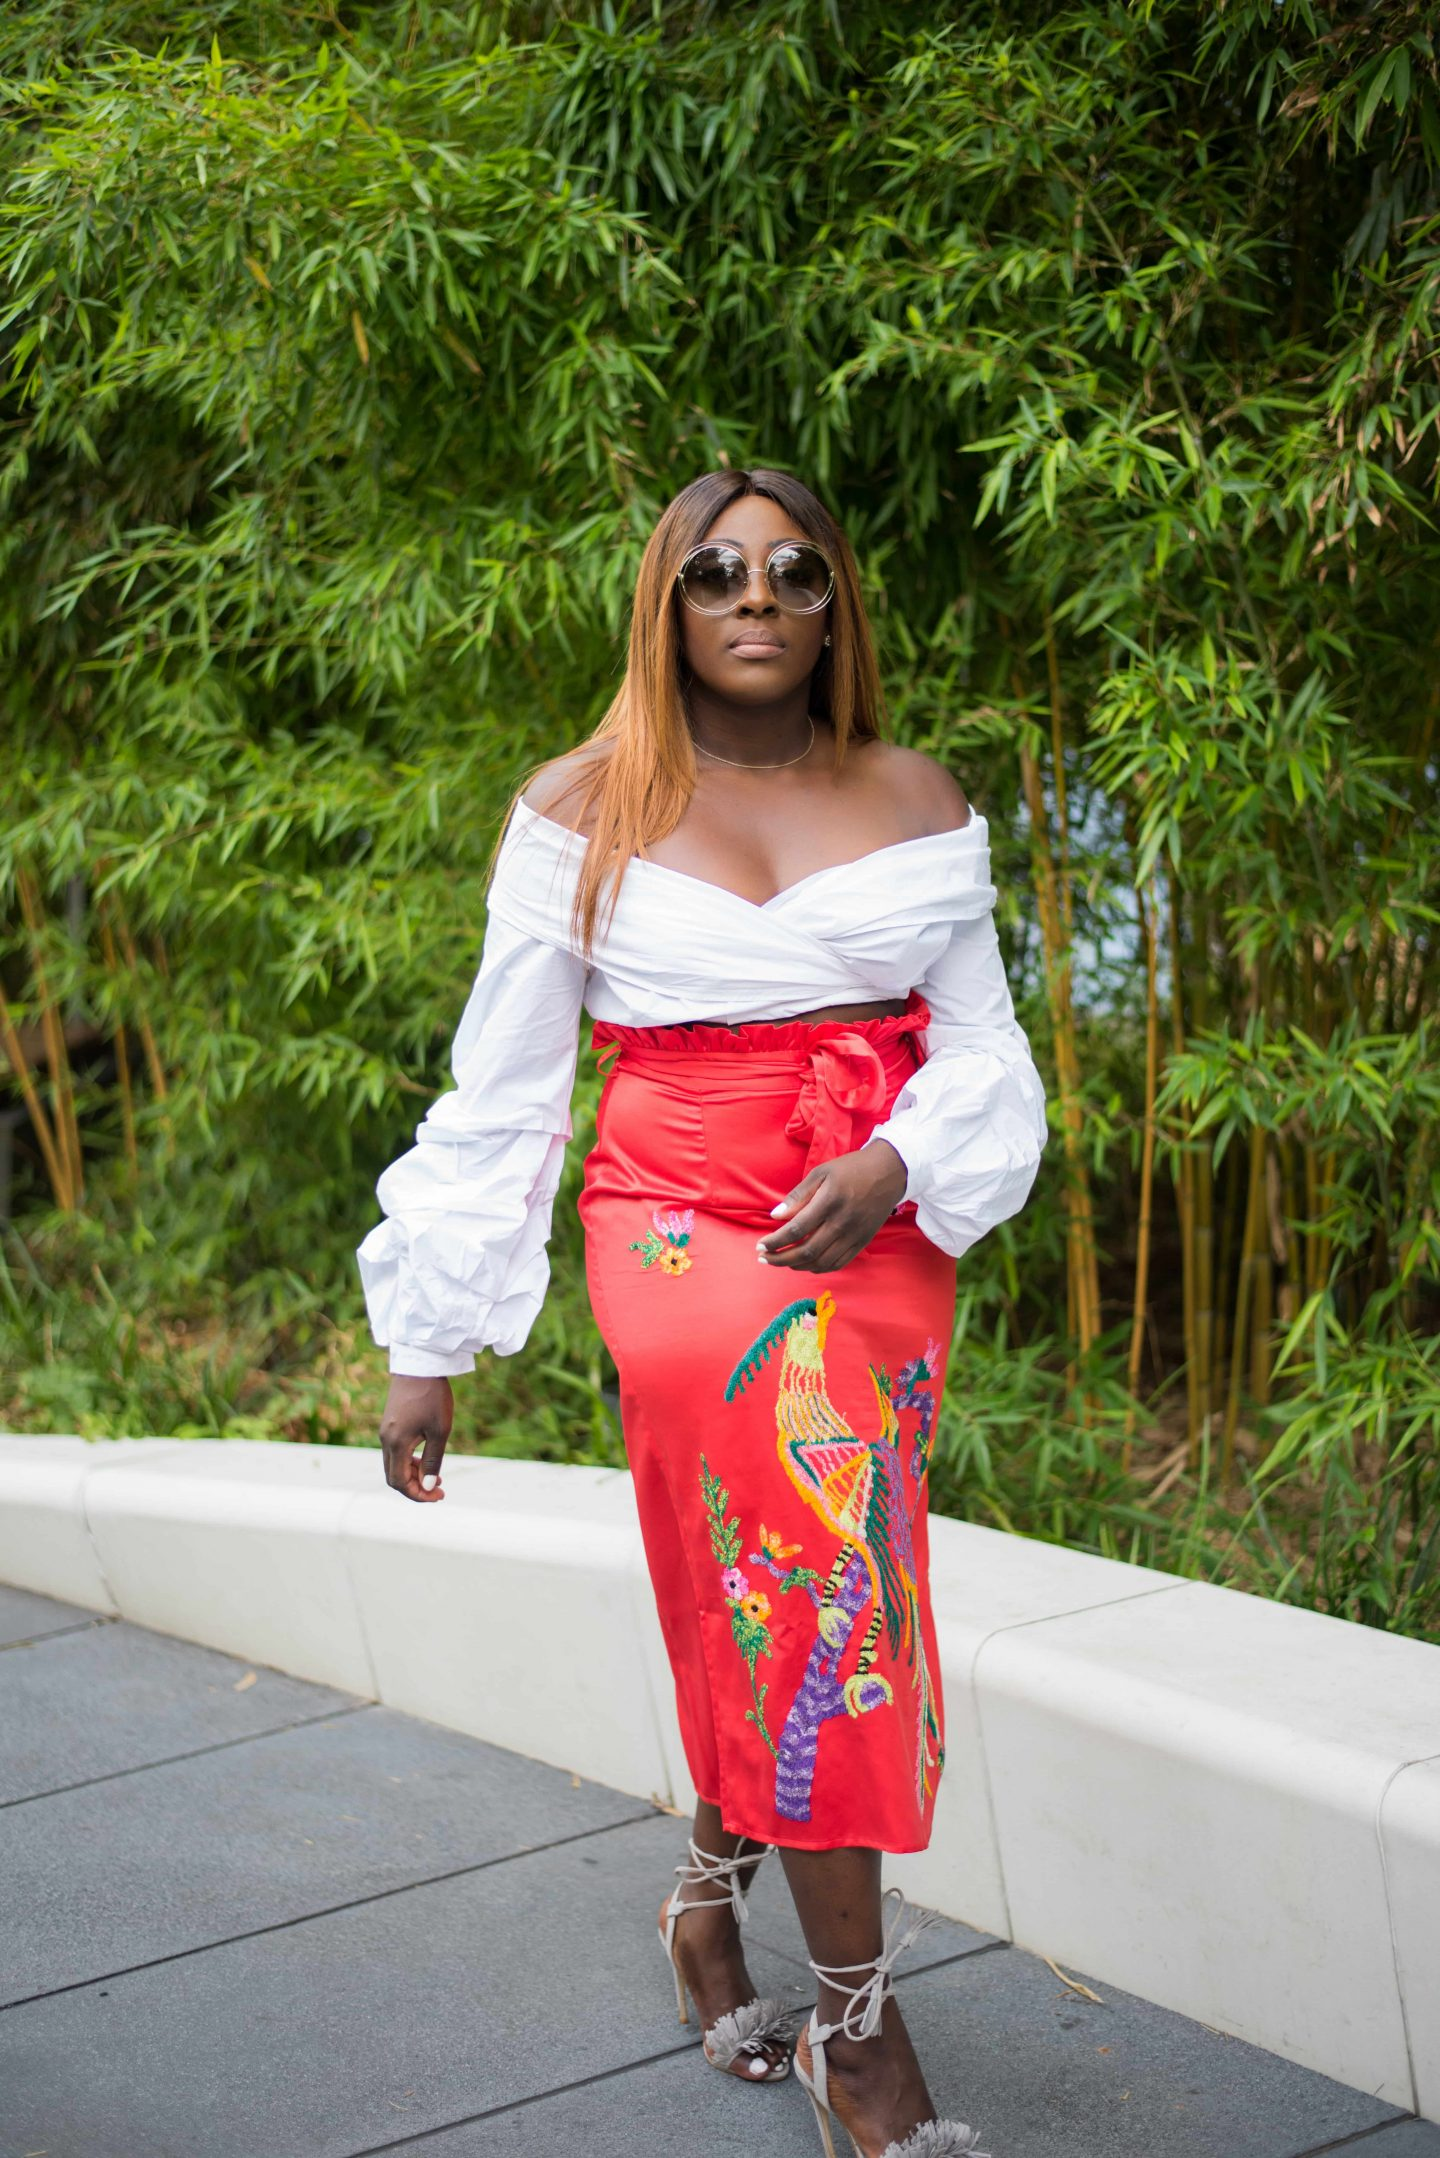 Statement Skirts & Tropical Roof Gardens 1 - asos white top - asos embroidery skirt - chloe sunglasses - Style and the Sass